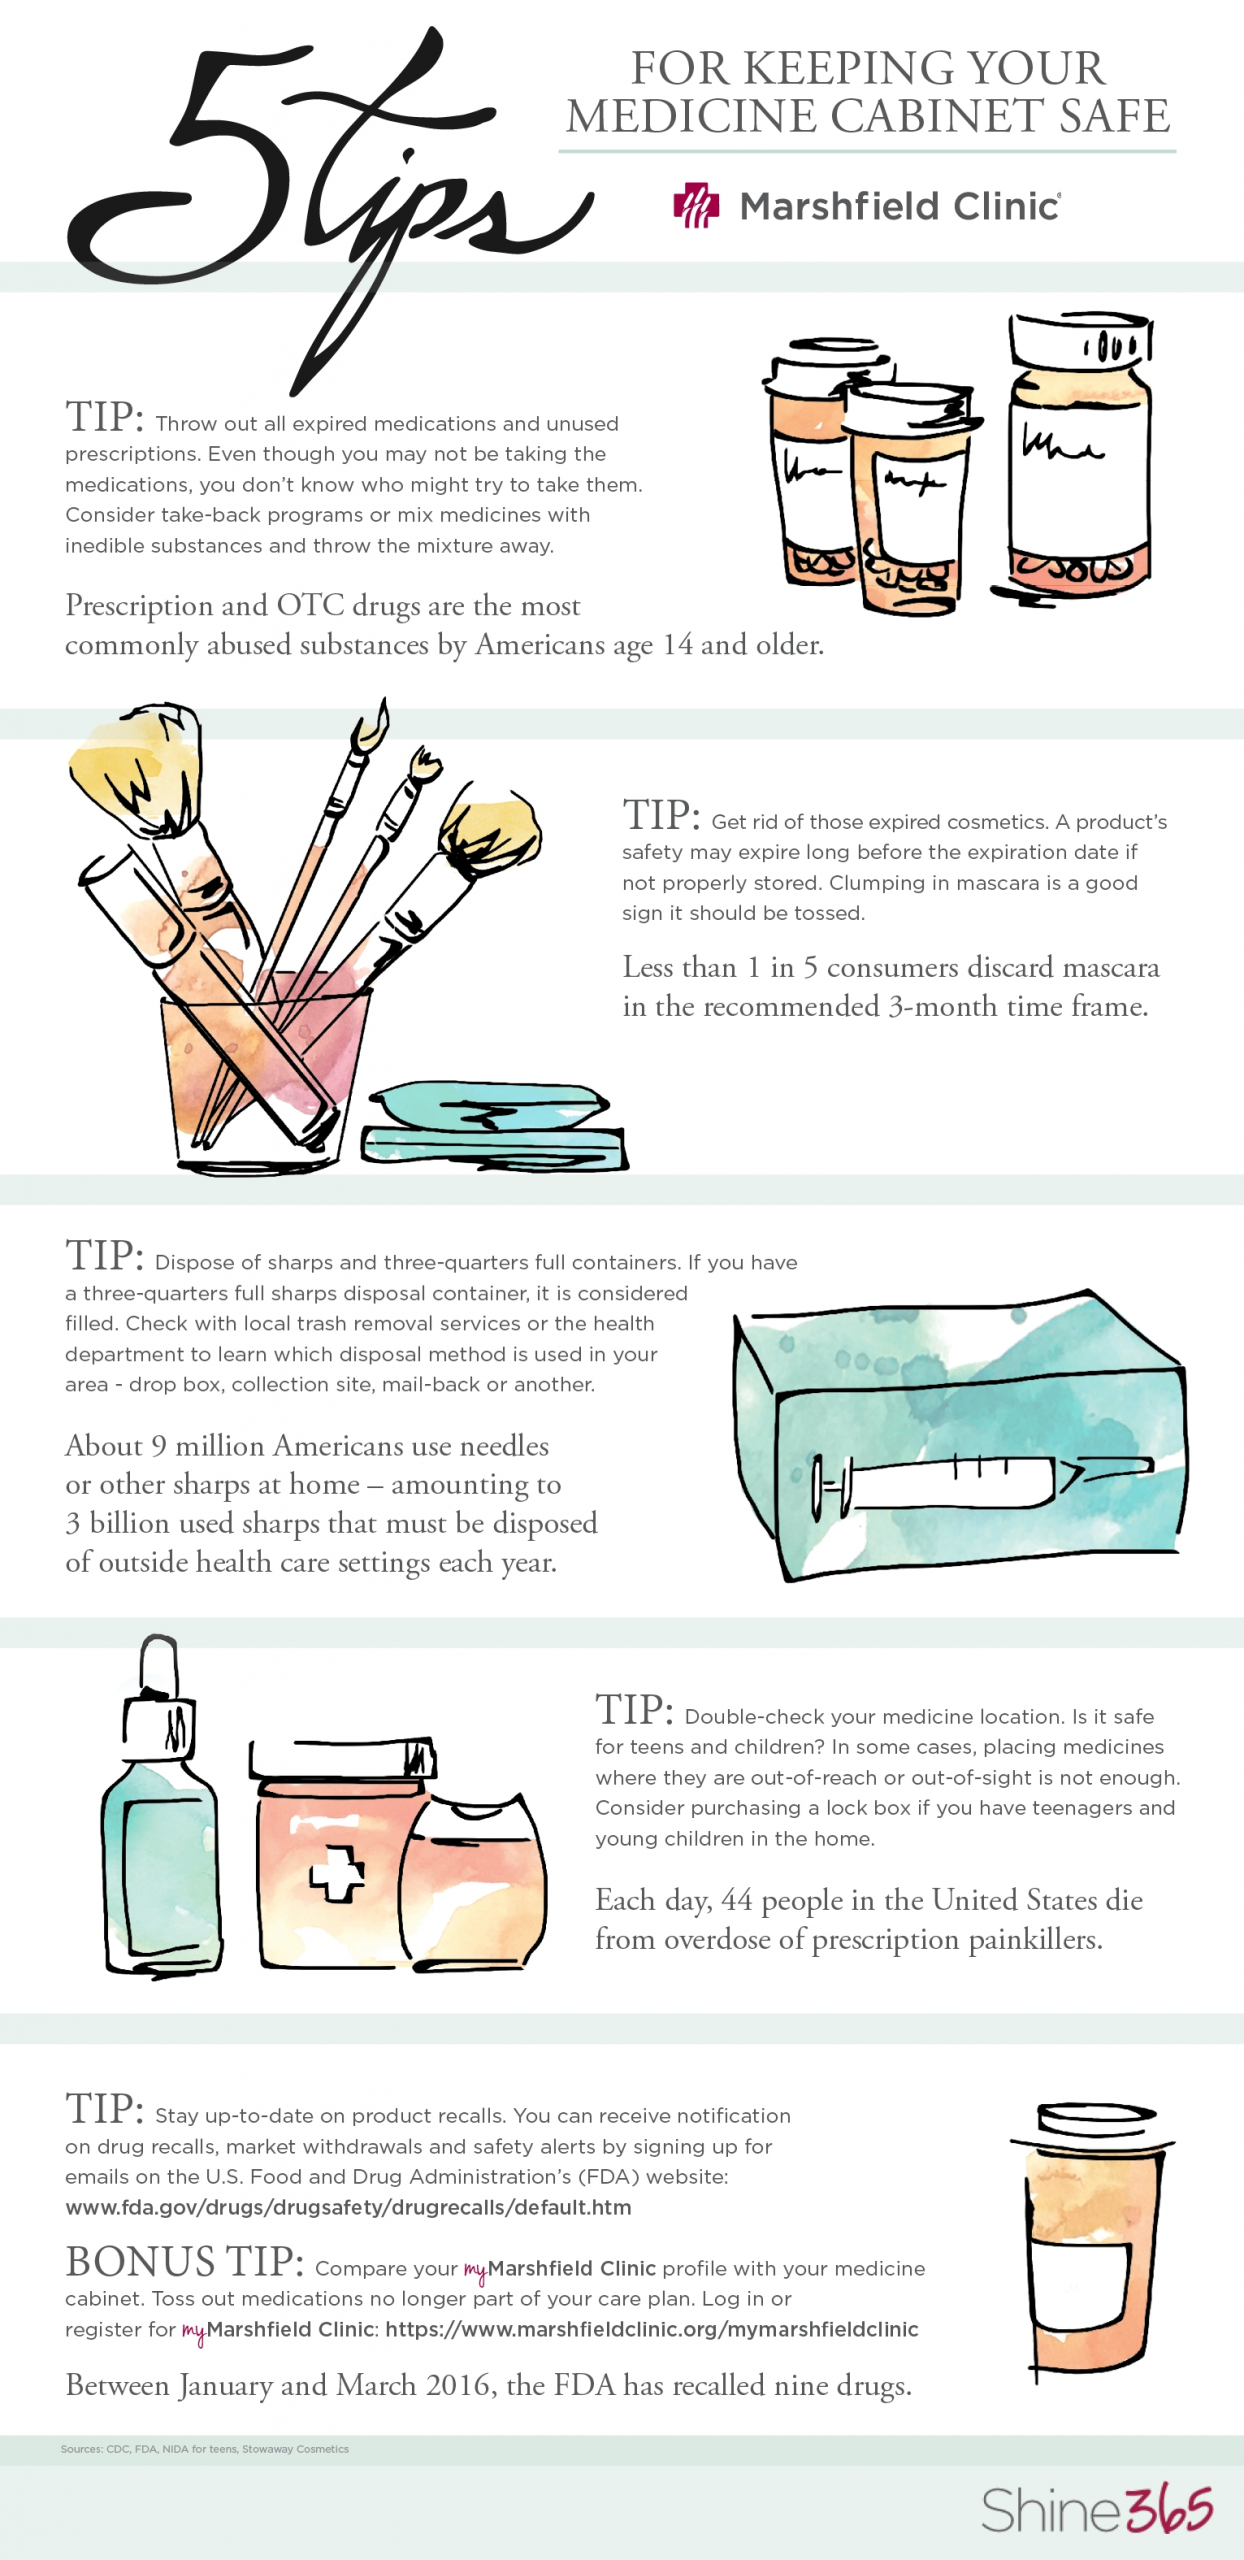 Spring Clean Your Medicine Cabinet | Shine365 From